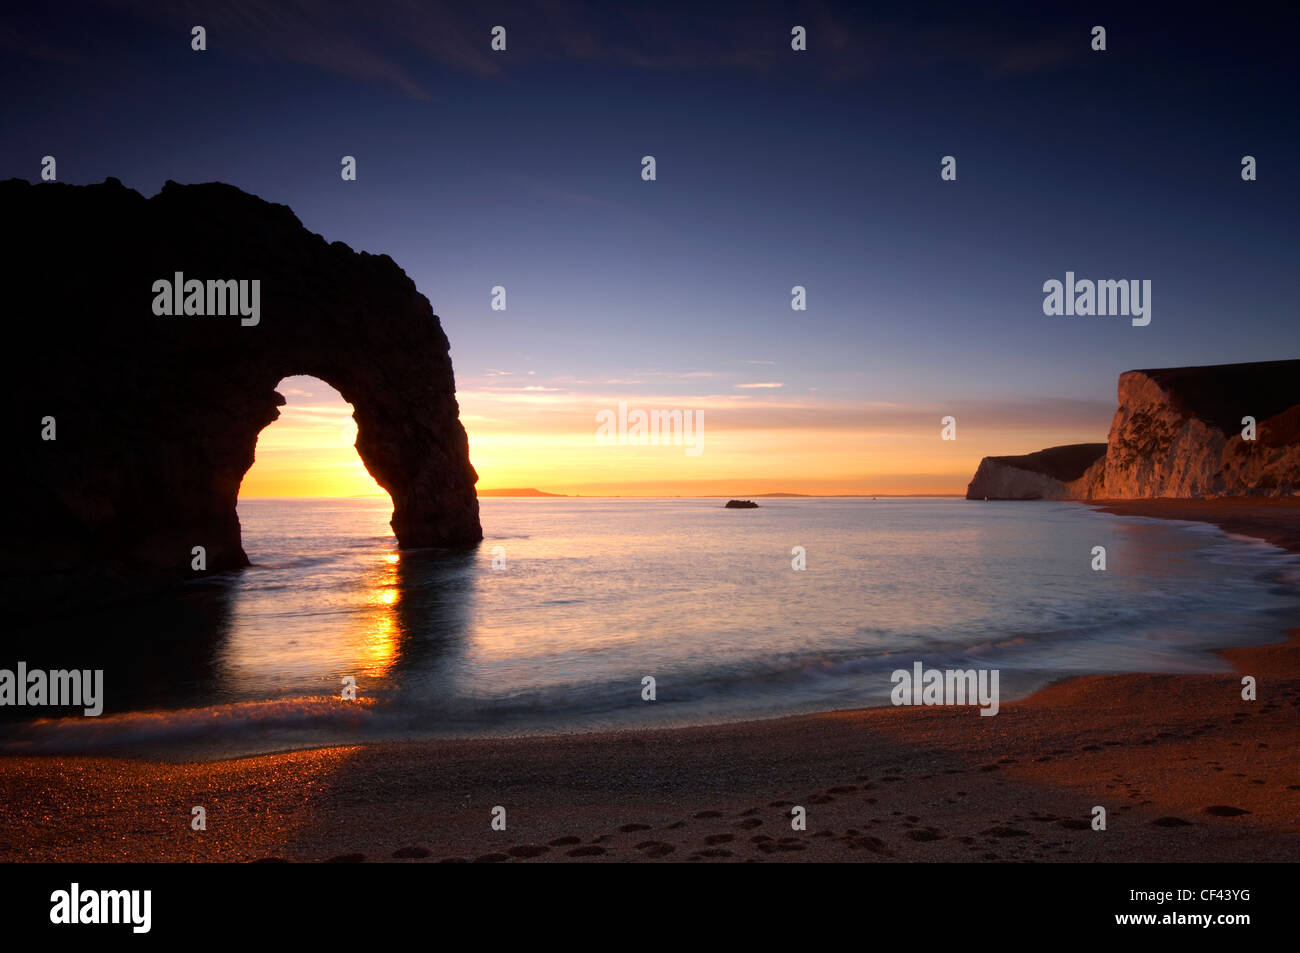 Sunset behind the arch of Durdle Door on the jurassic coast. - Stock Image